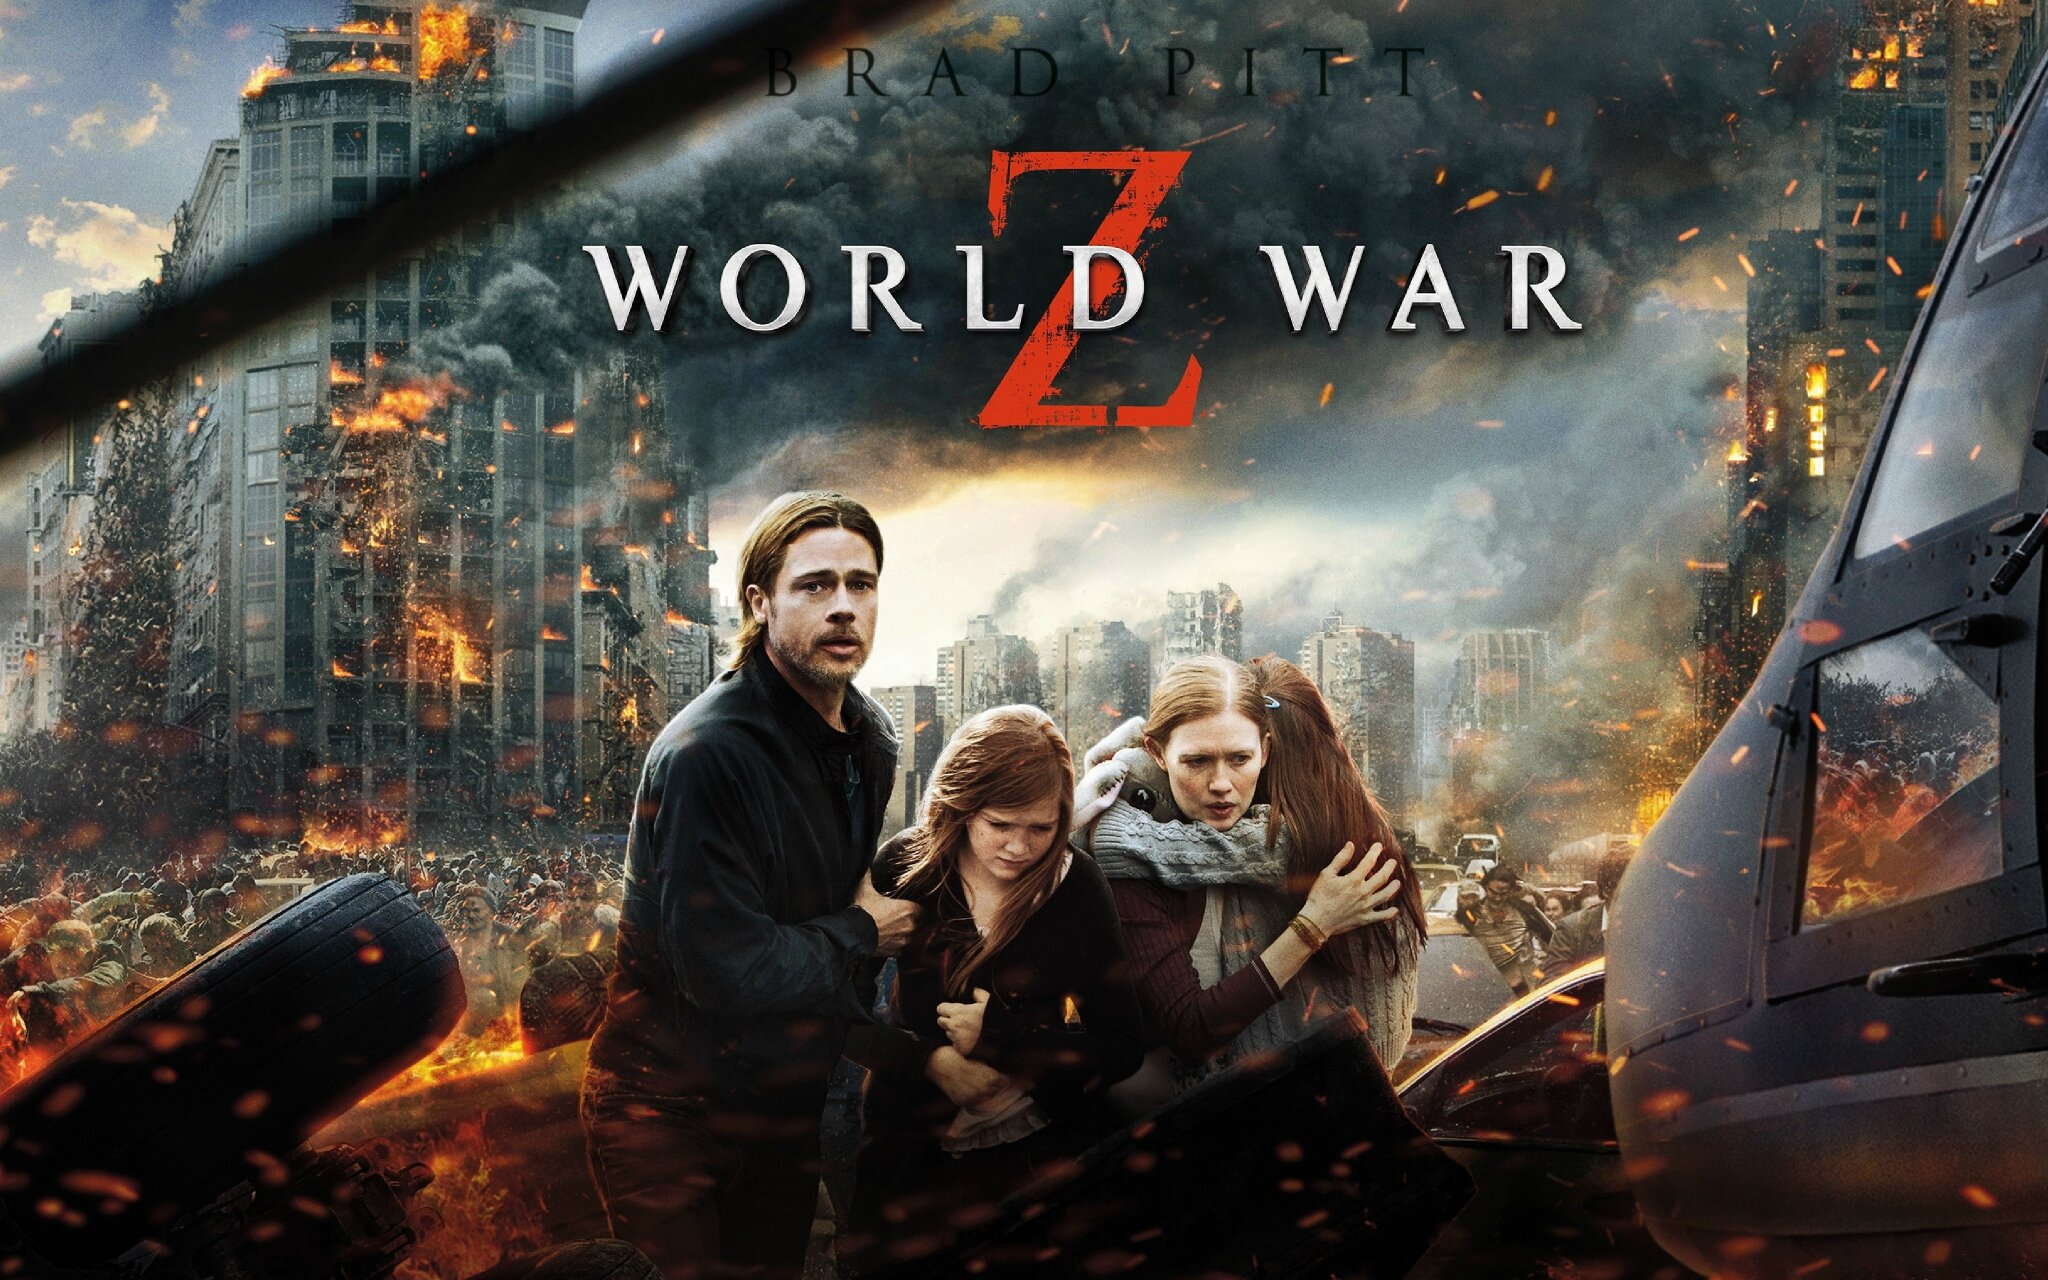 Gerry Filme with regard to world war z - marc forster - les yeux sur tout